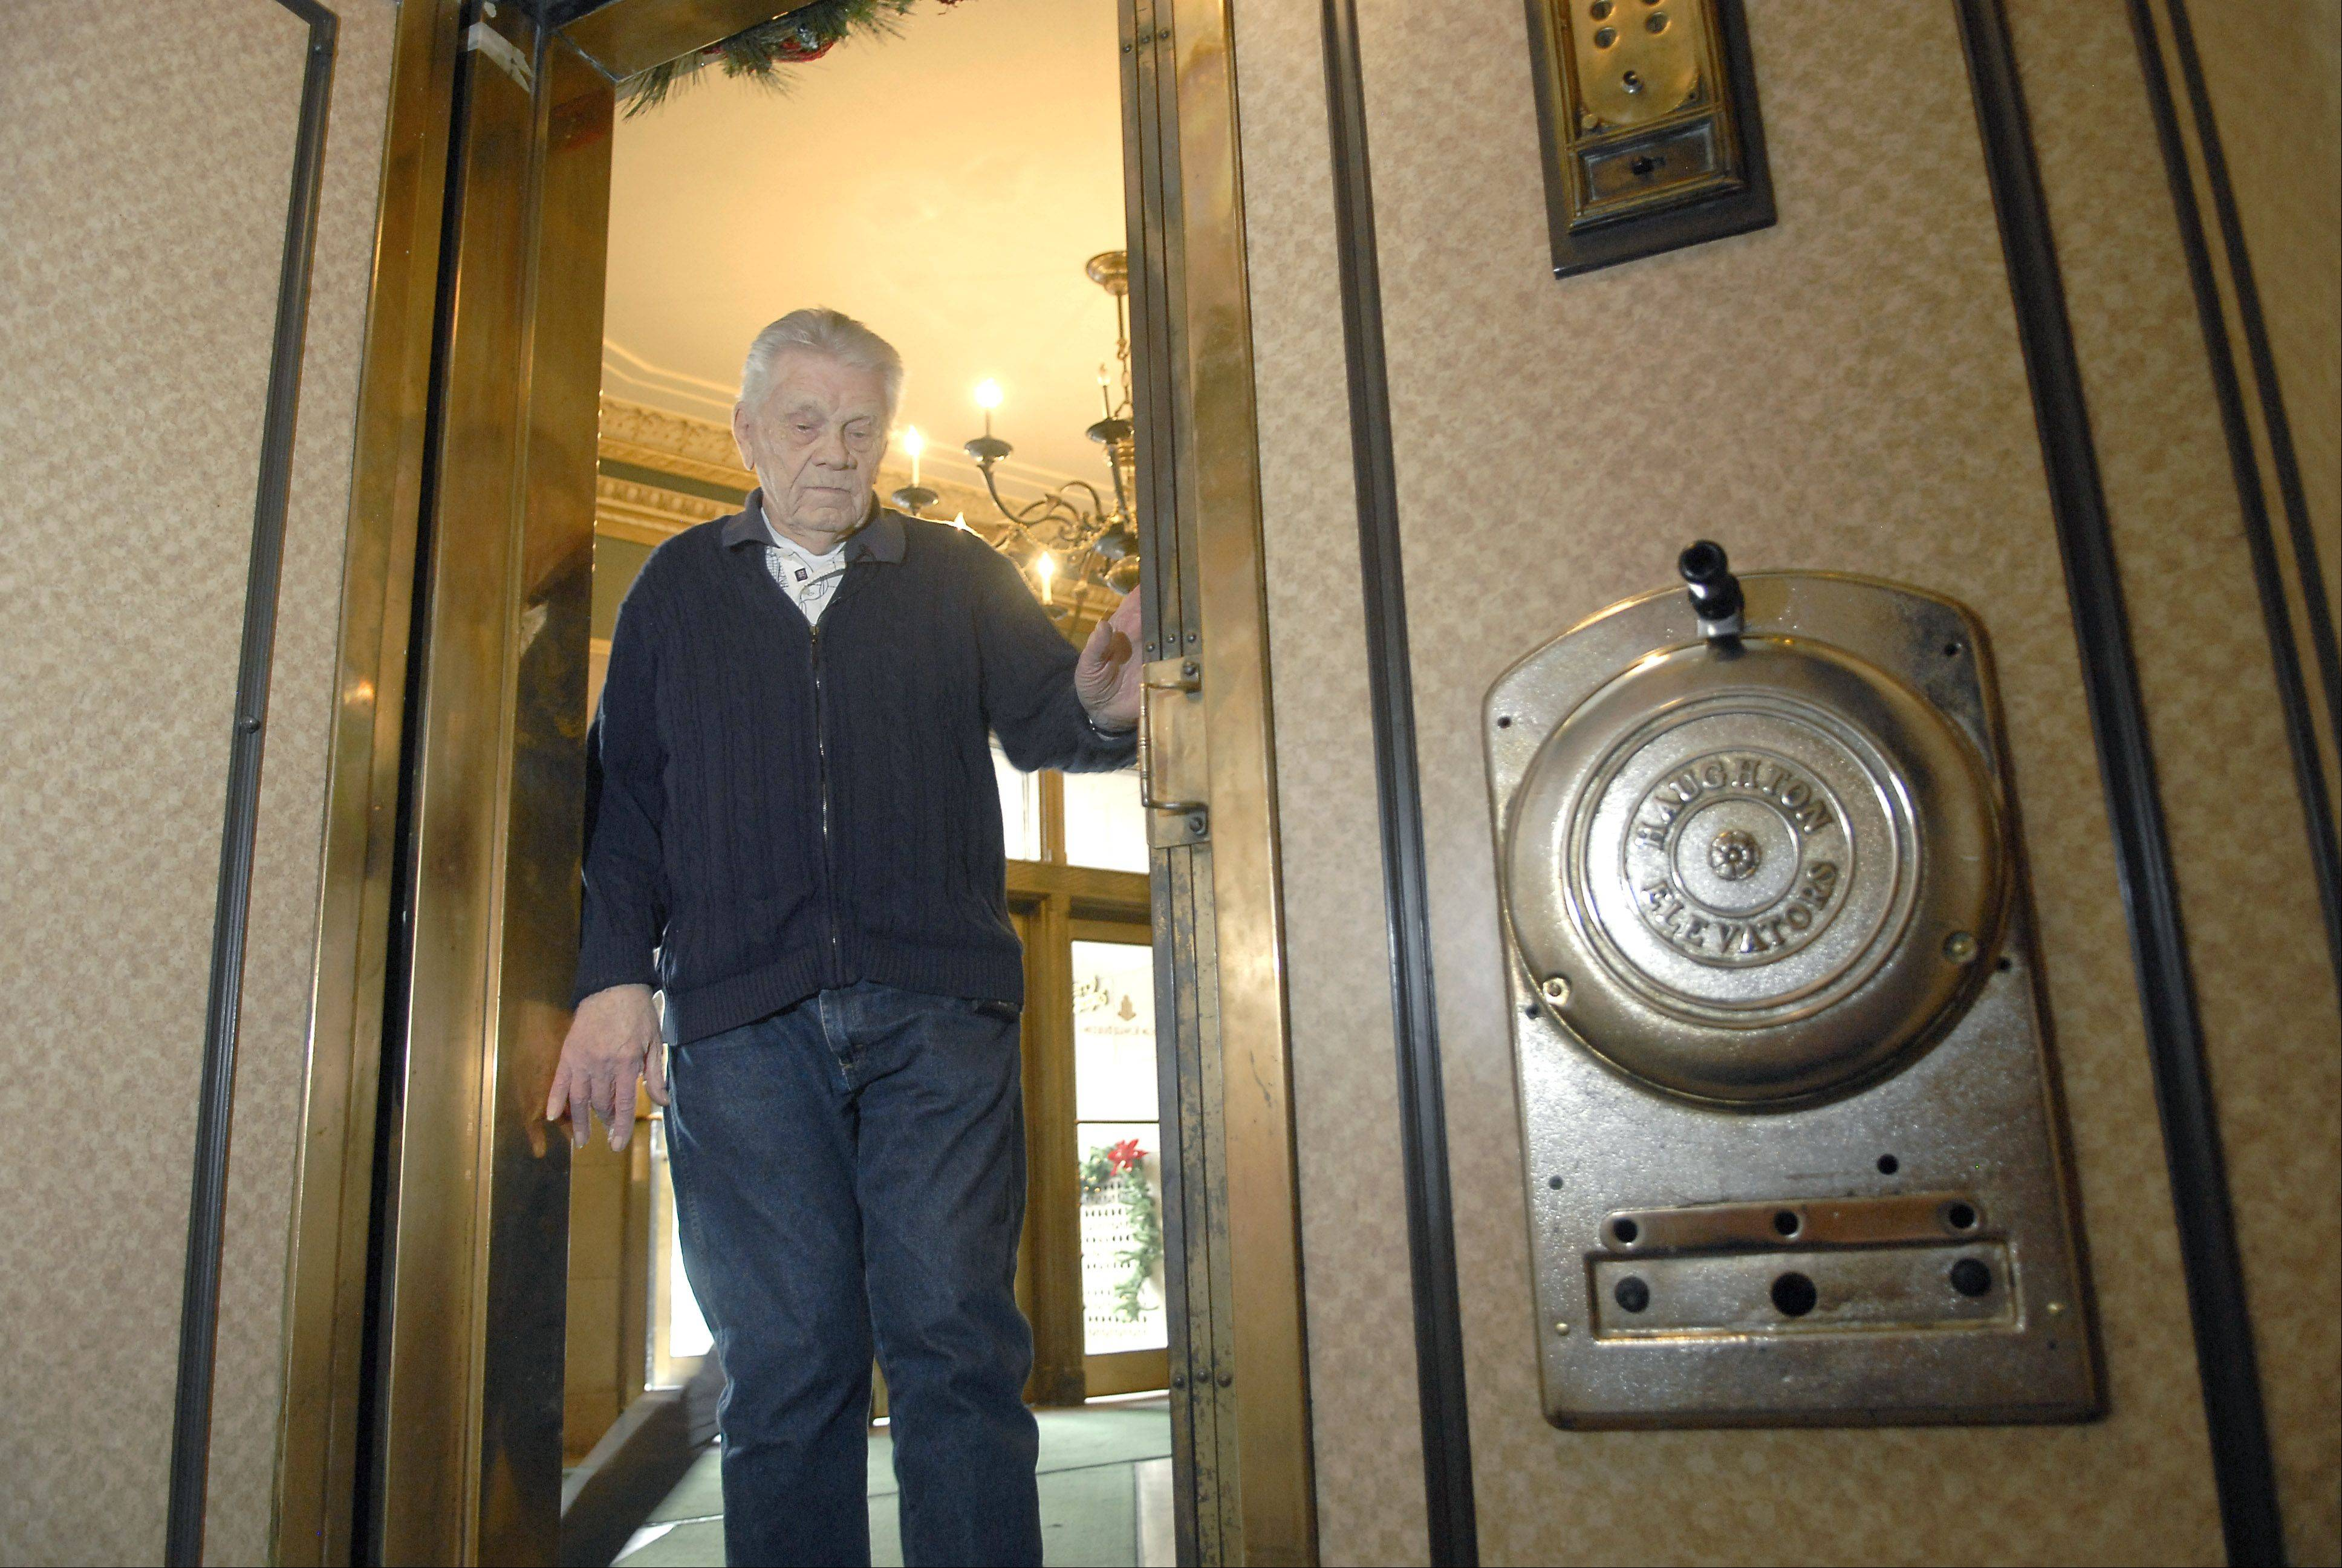 Allan L. Wudi, age 87, is the morning elevator operator at the Elgin Tower Building. He has worked at the building for the past 12 years and doesn't plan to quit anytime soon.